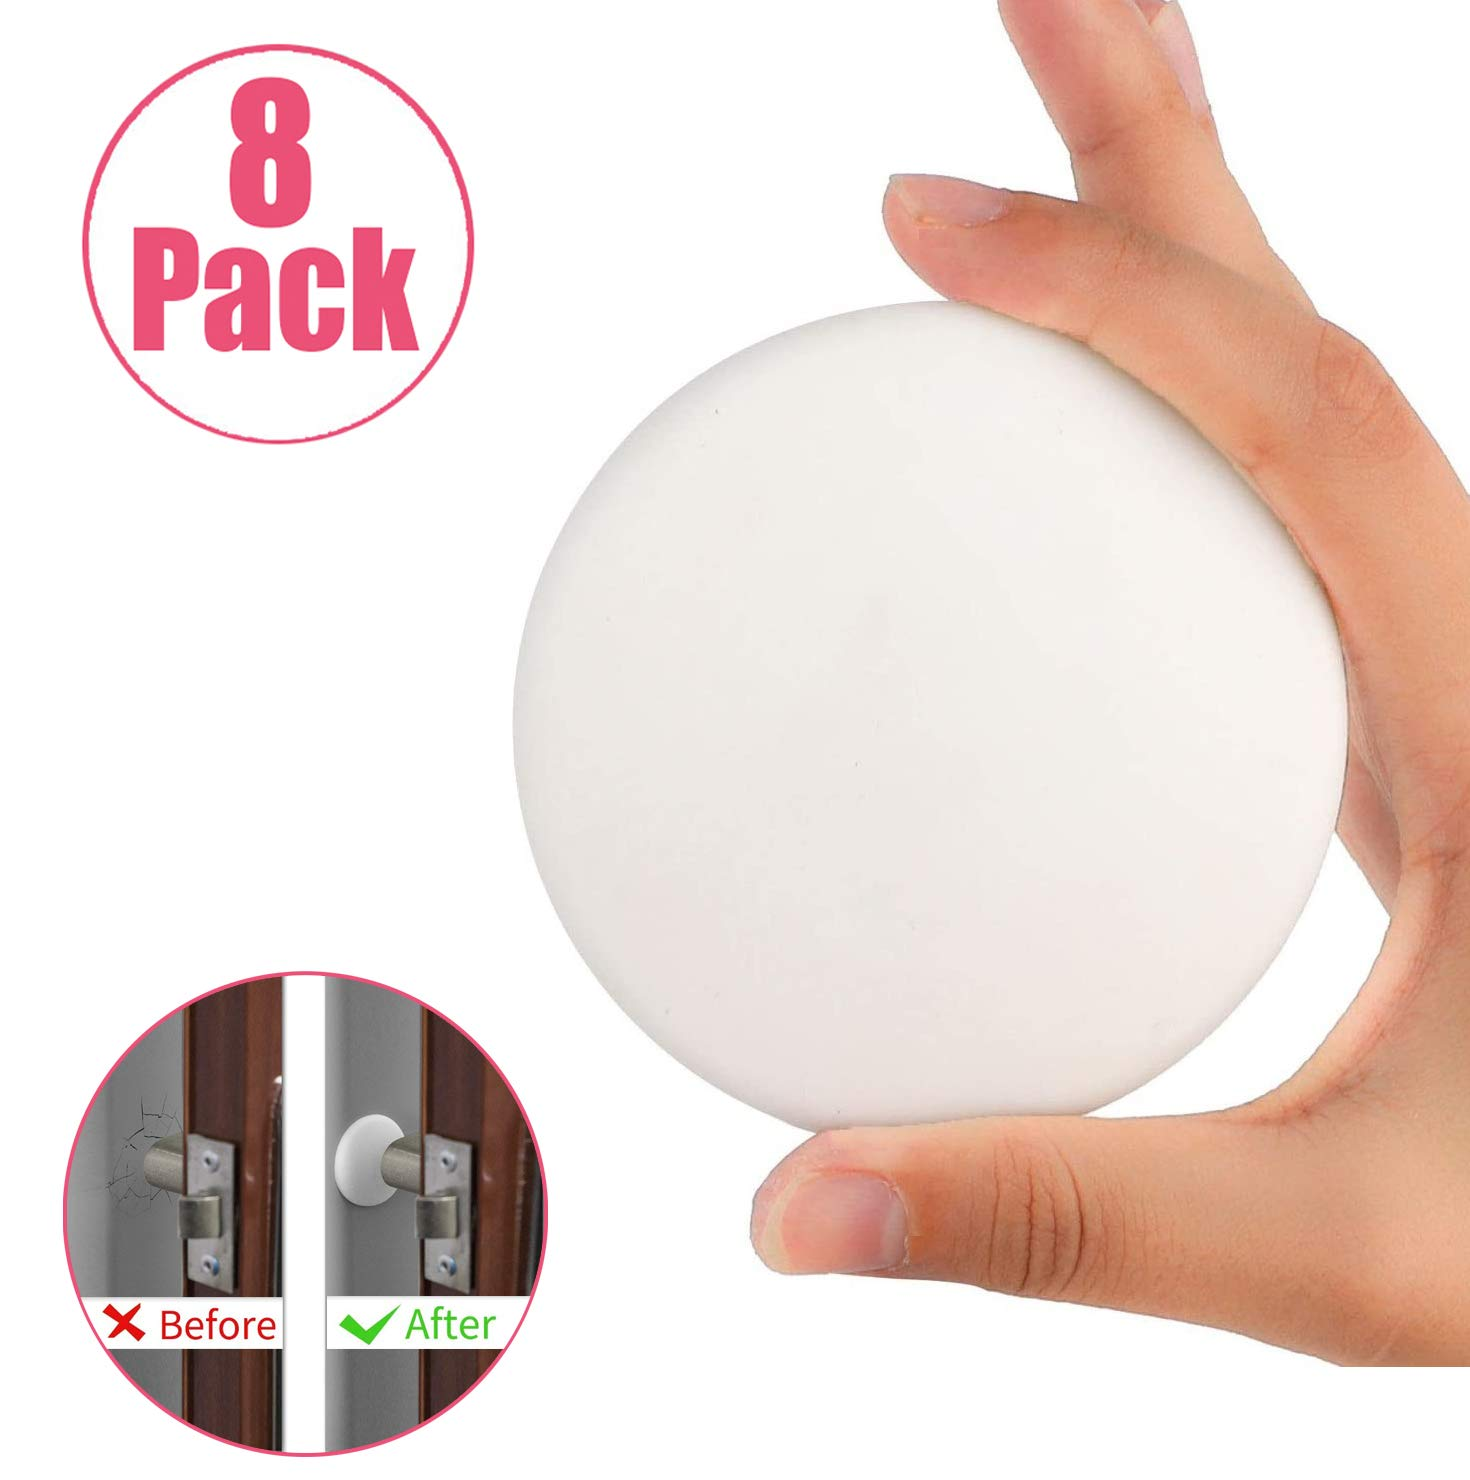 Door Stopper Wall Protector,8 Pack 3.15 Inch Round Door Knob Silicon Wall Guard Shield Protector